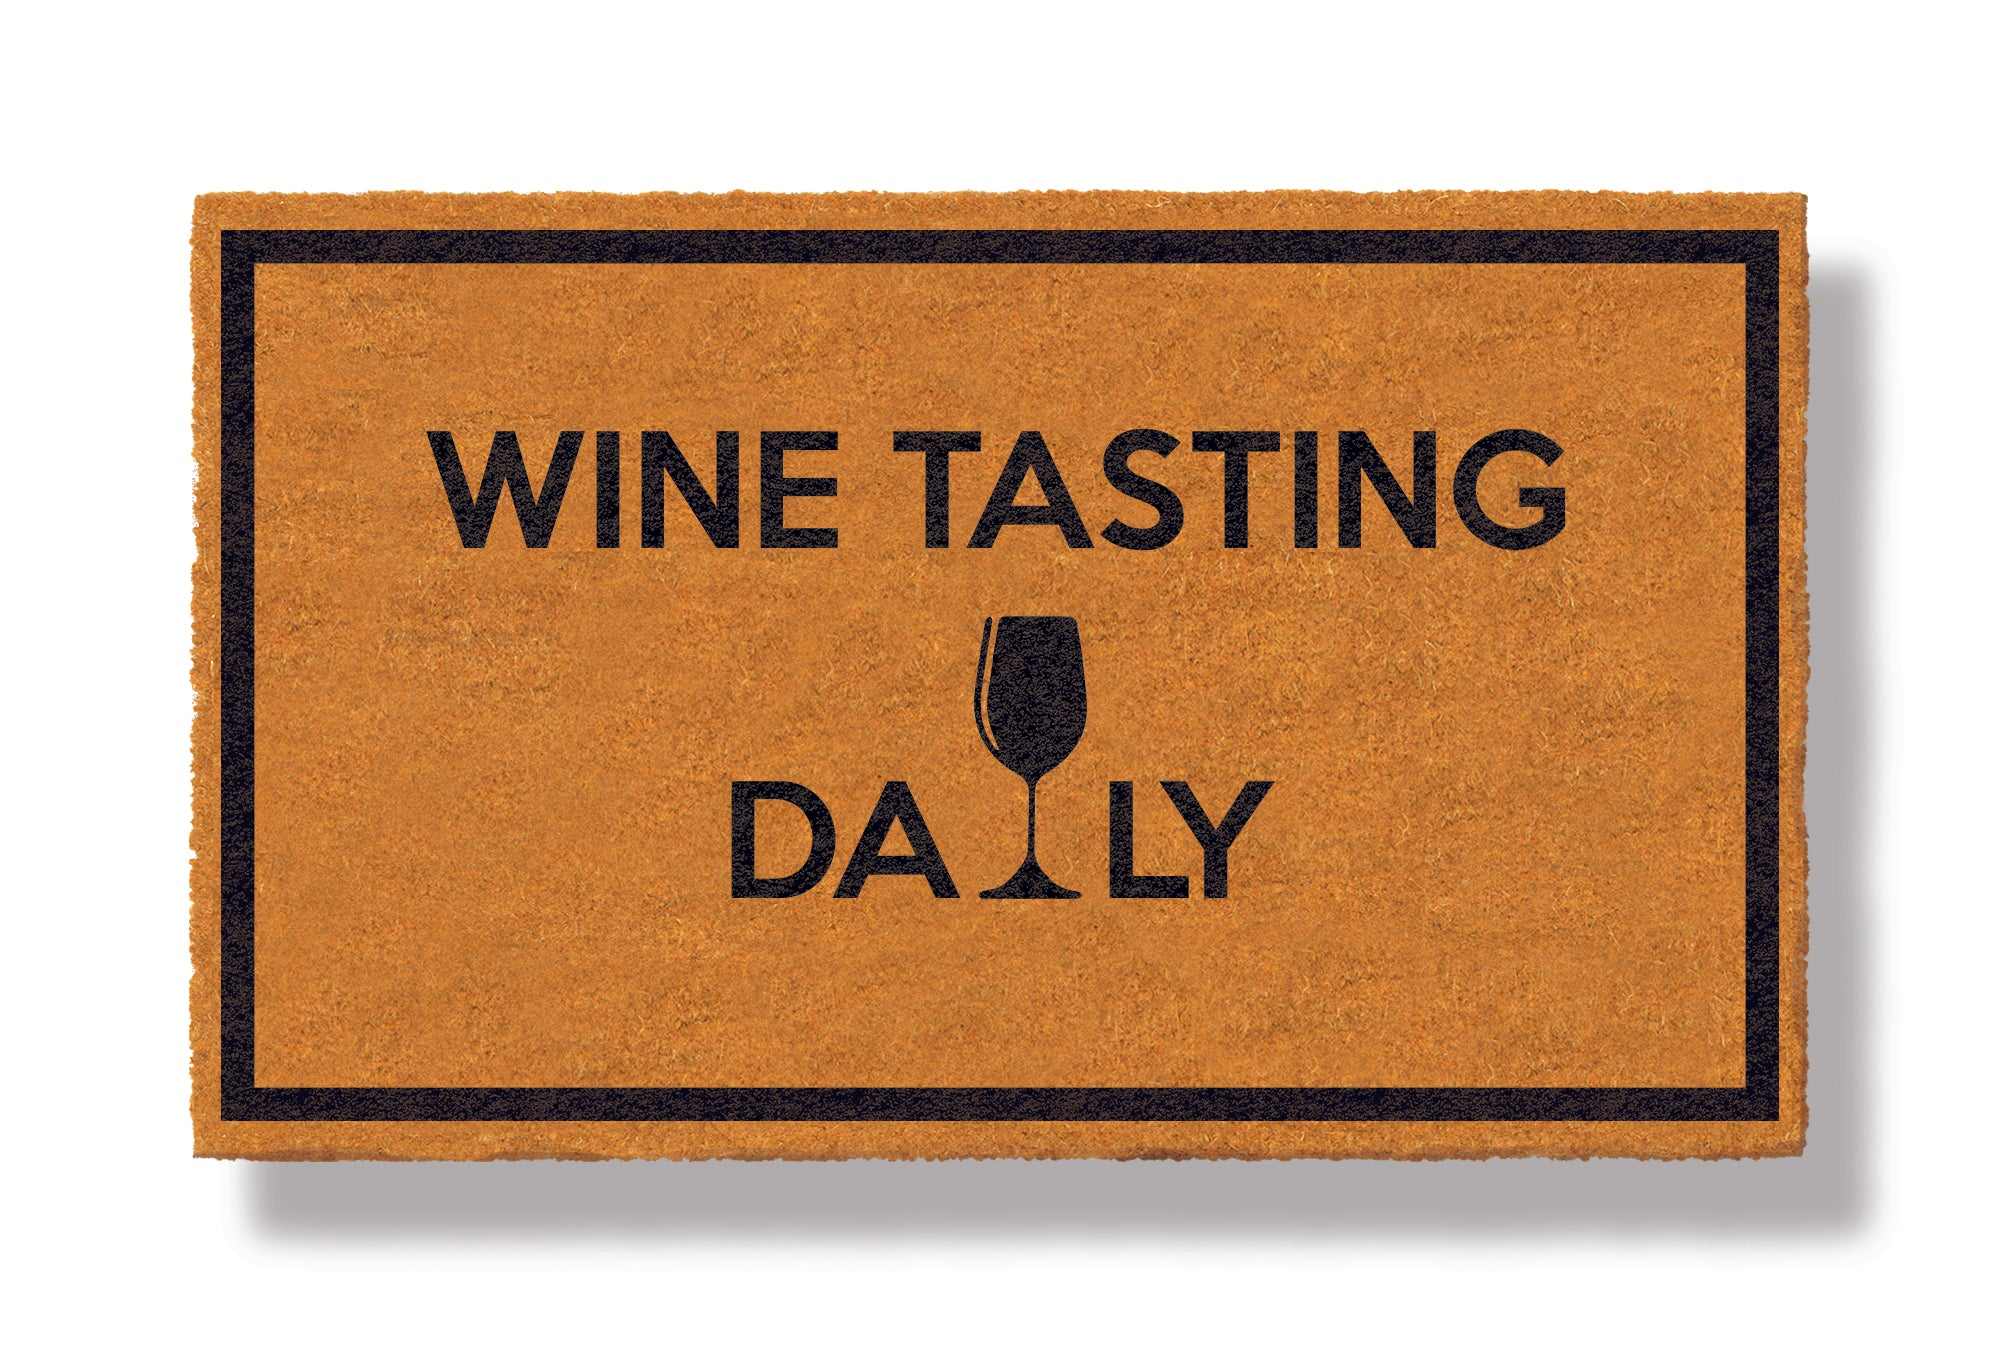 This coir welcome mat is a funny doormat on a white background with a drop shadow. The brown doormat has a black border and has black centered text that reads Wine Tasting Daily.